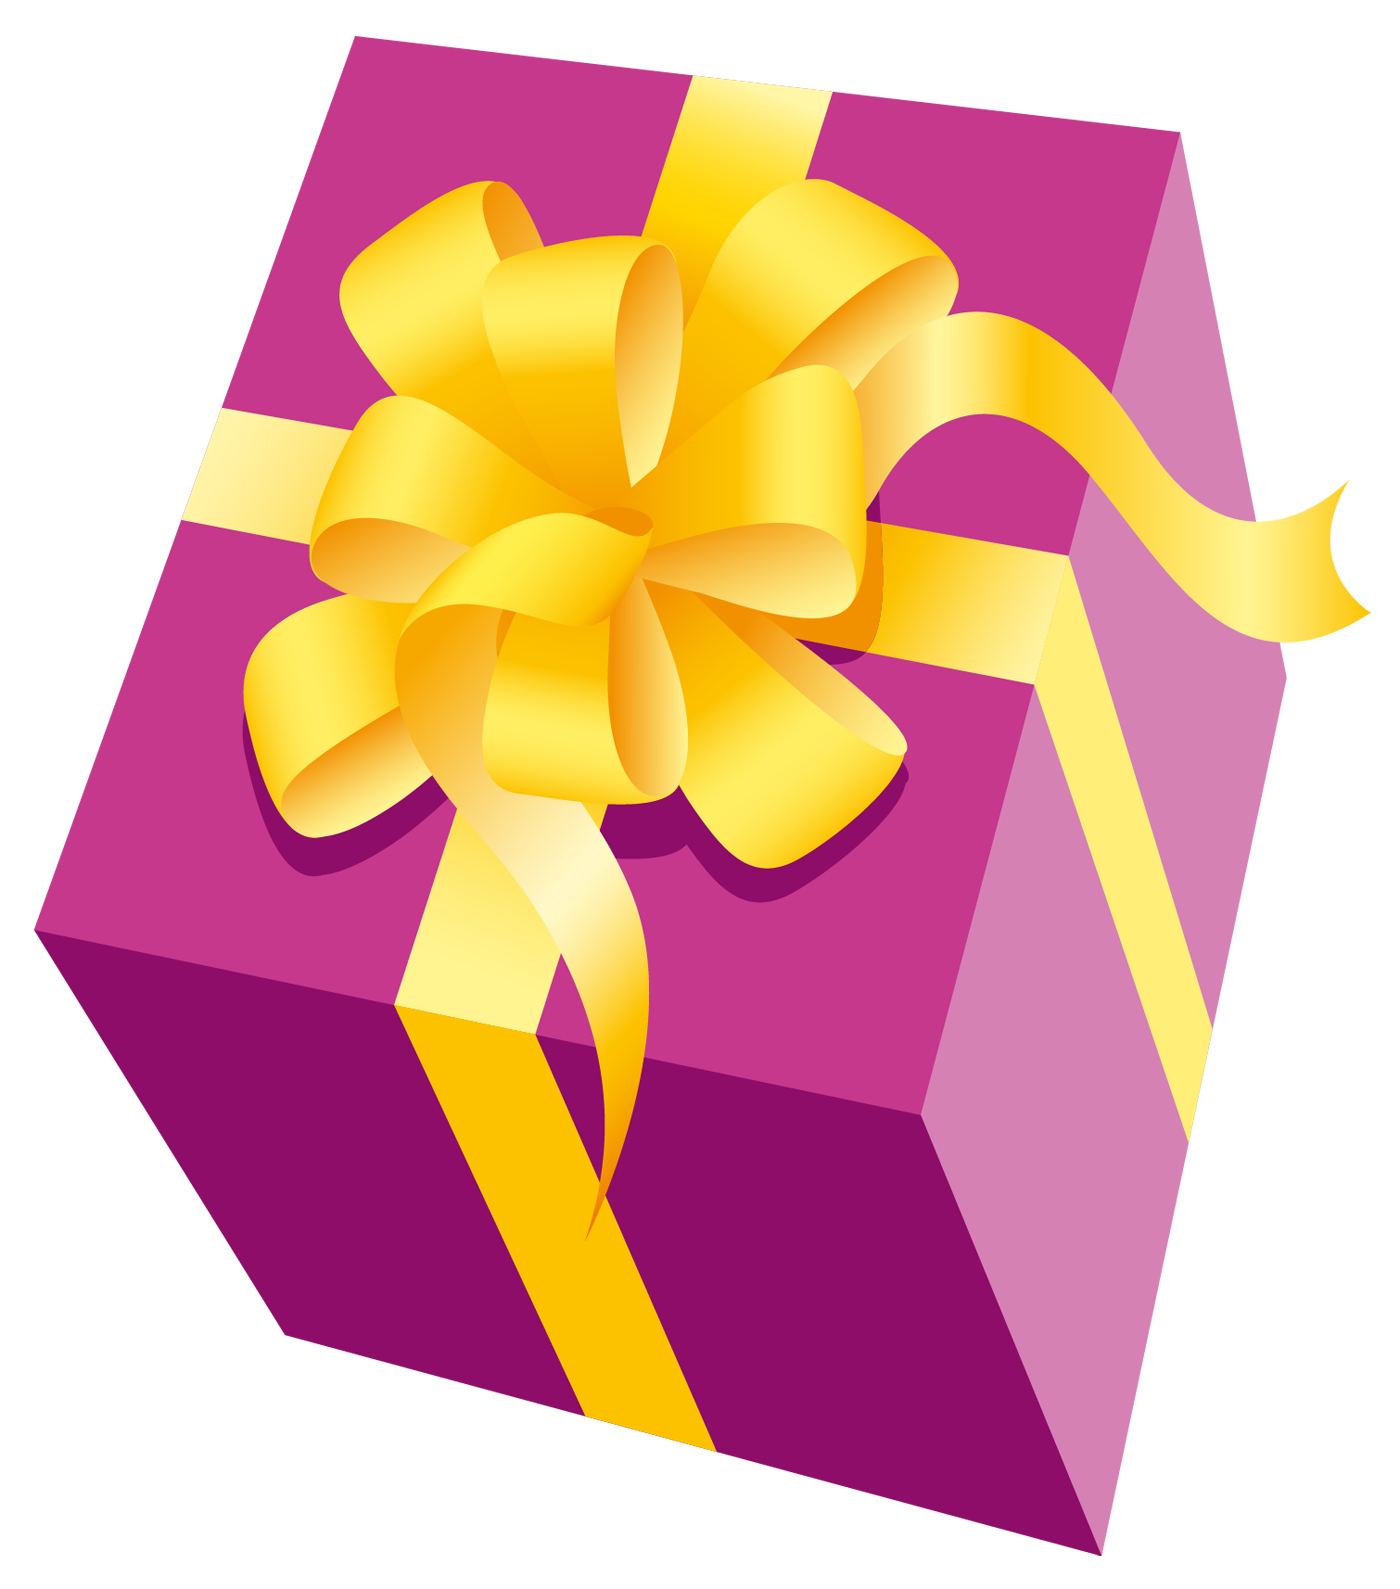 Gift clipart yellow. Pink png present with